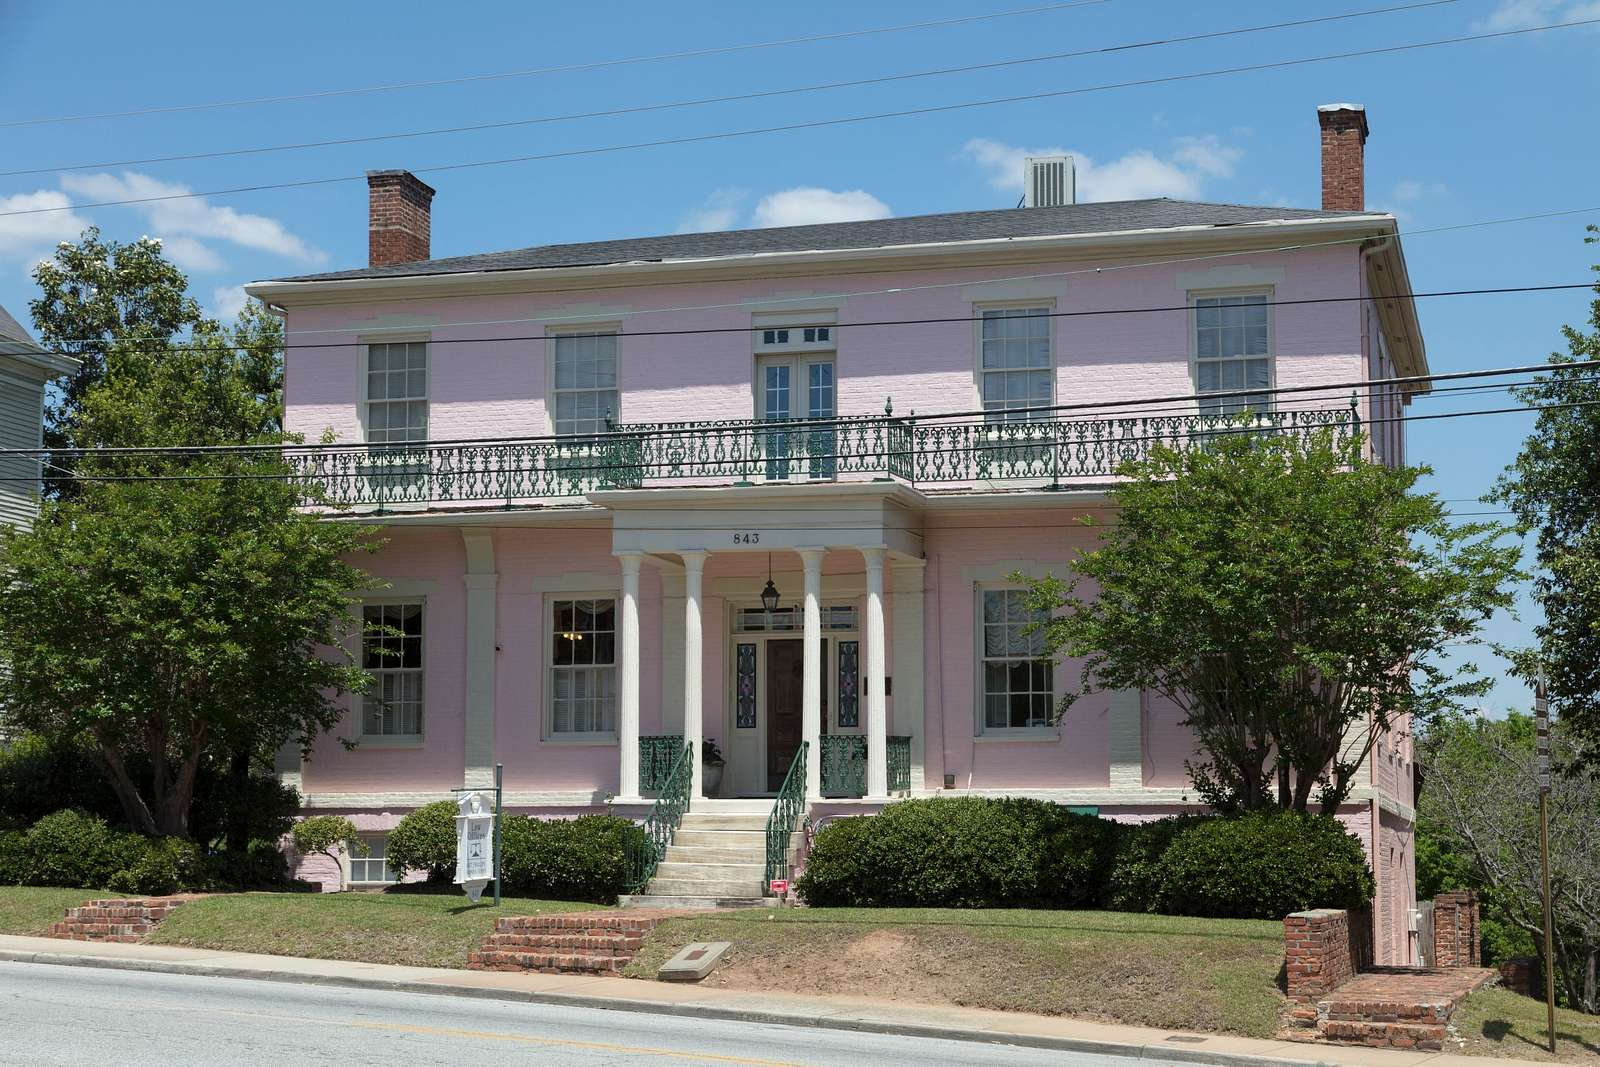 The historic Green-Poe House in Macon, Georgia, was built by physician James Mercer Green, who ran Macon's Academy for the Blind, in 1840